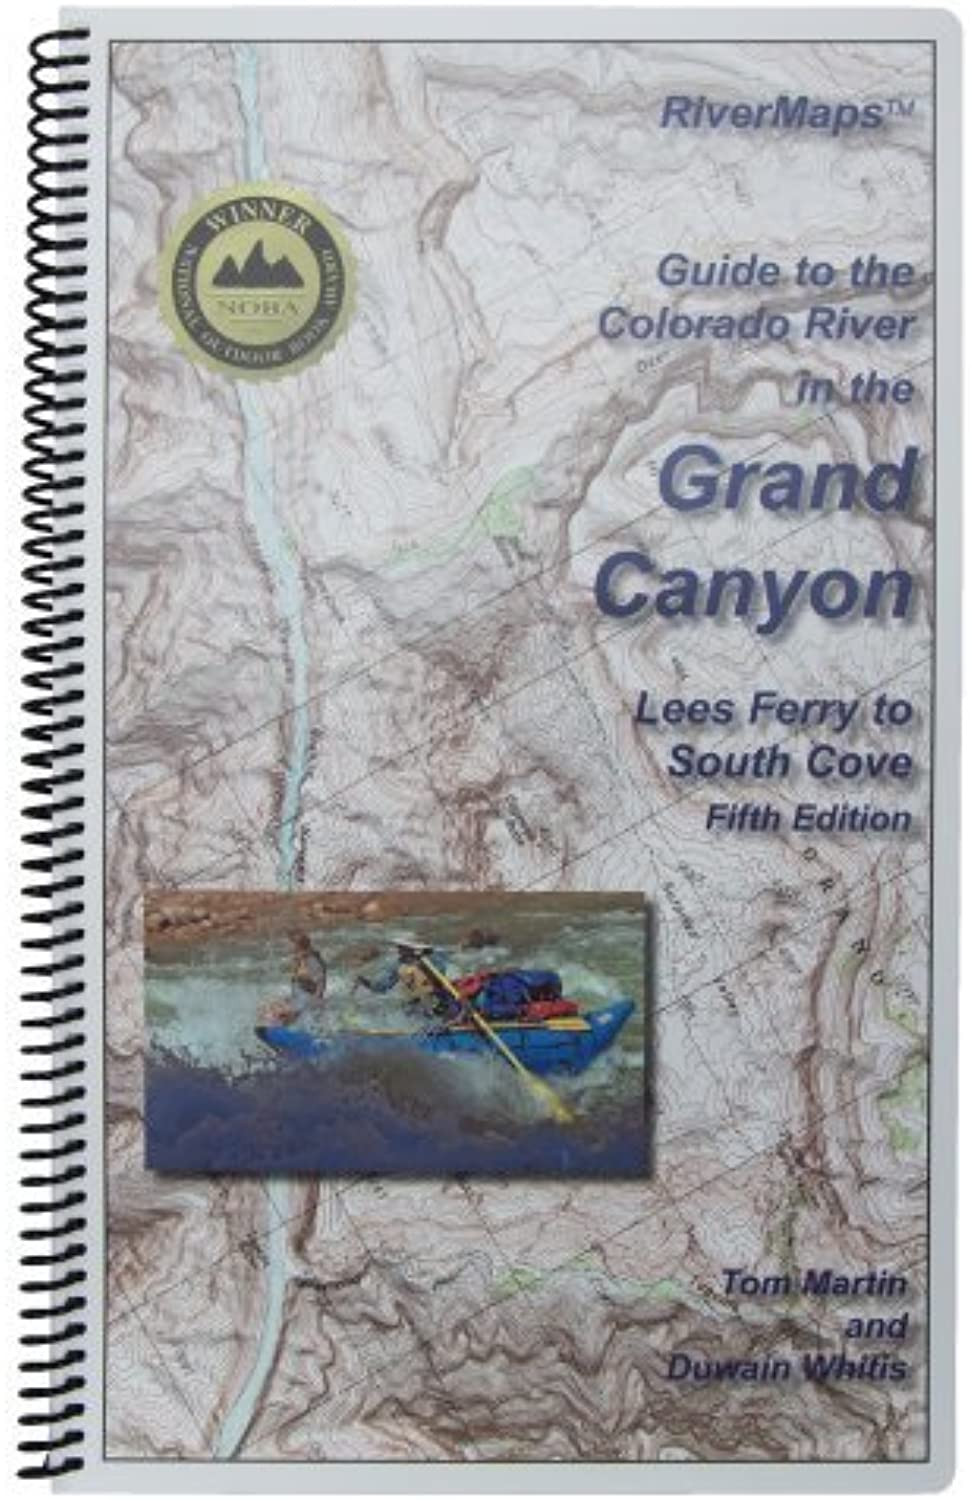 Guide to the colorado River in the Grand Canyon by River Maps